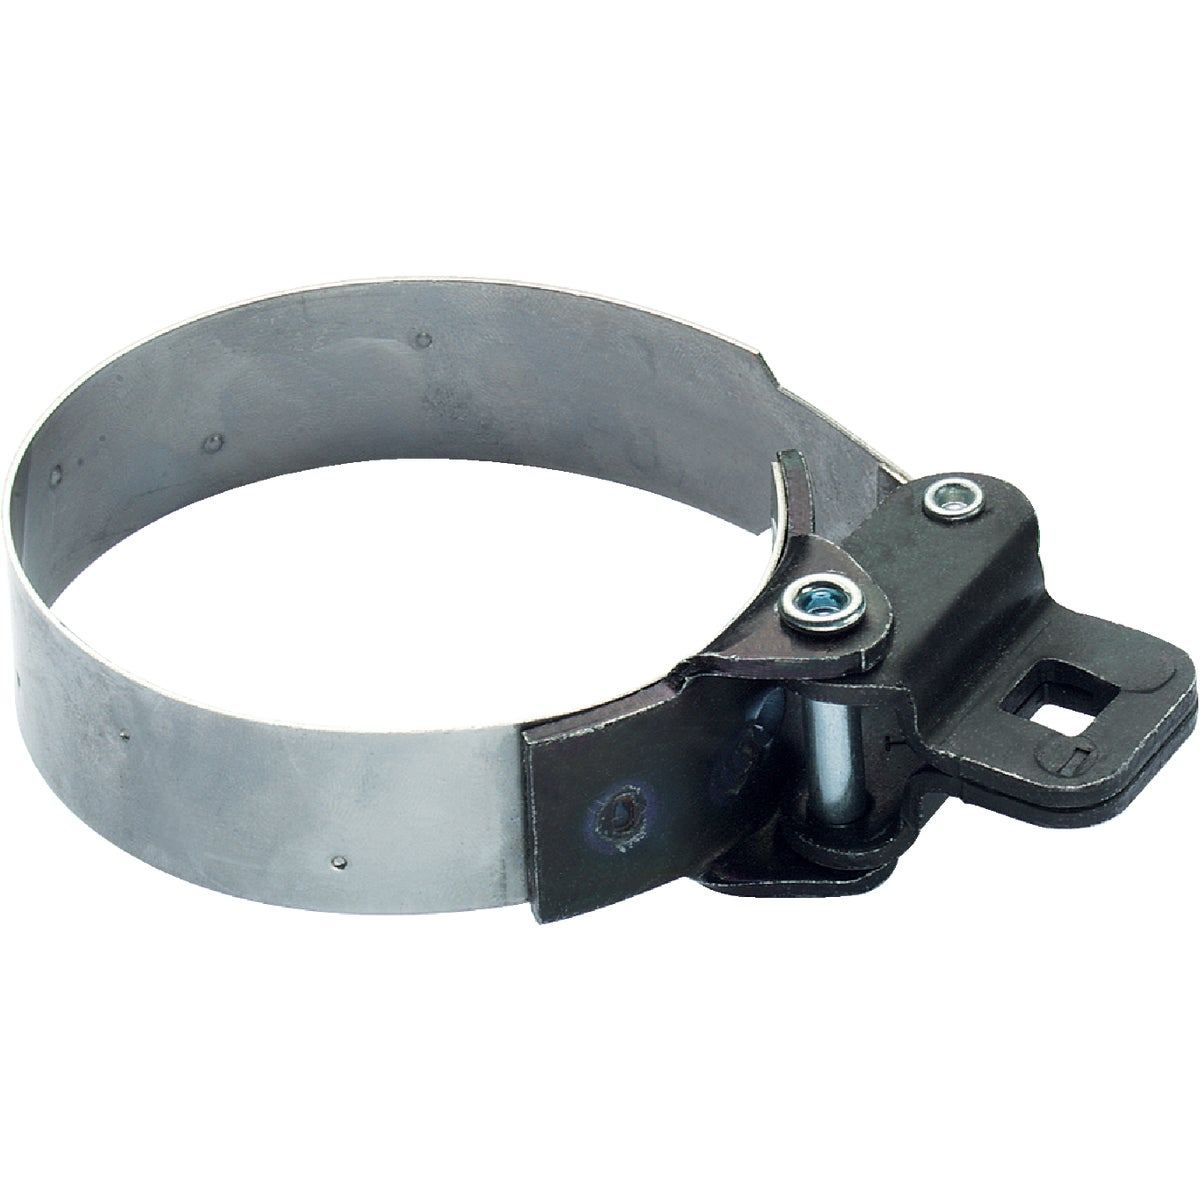 "3/8"" SQ FILTER WRENCH"